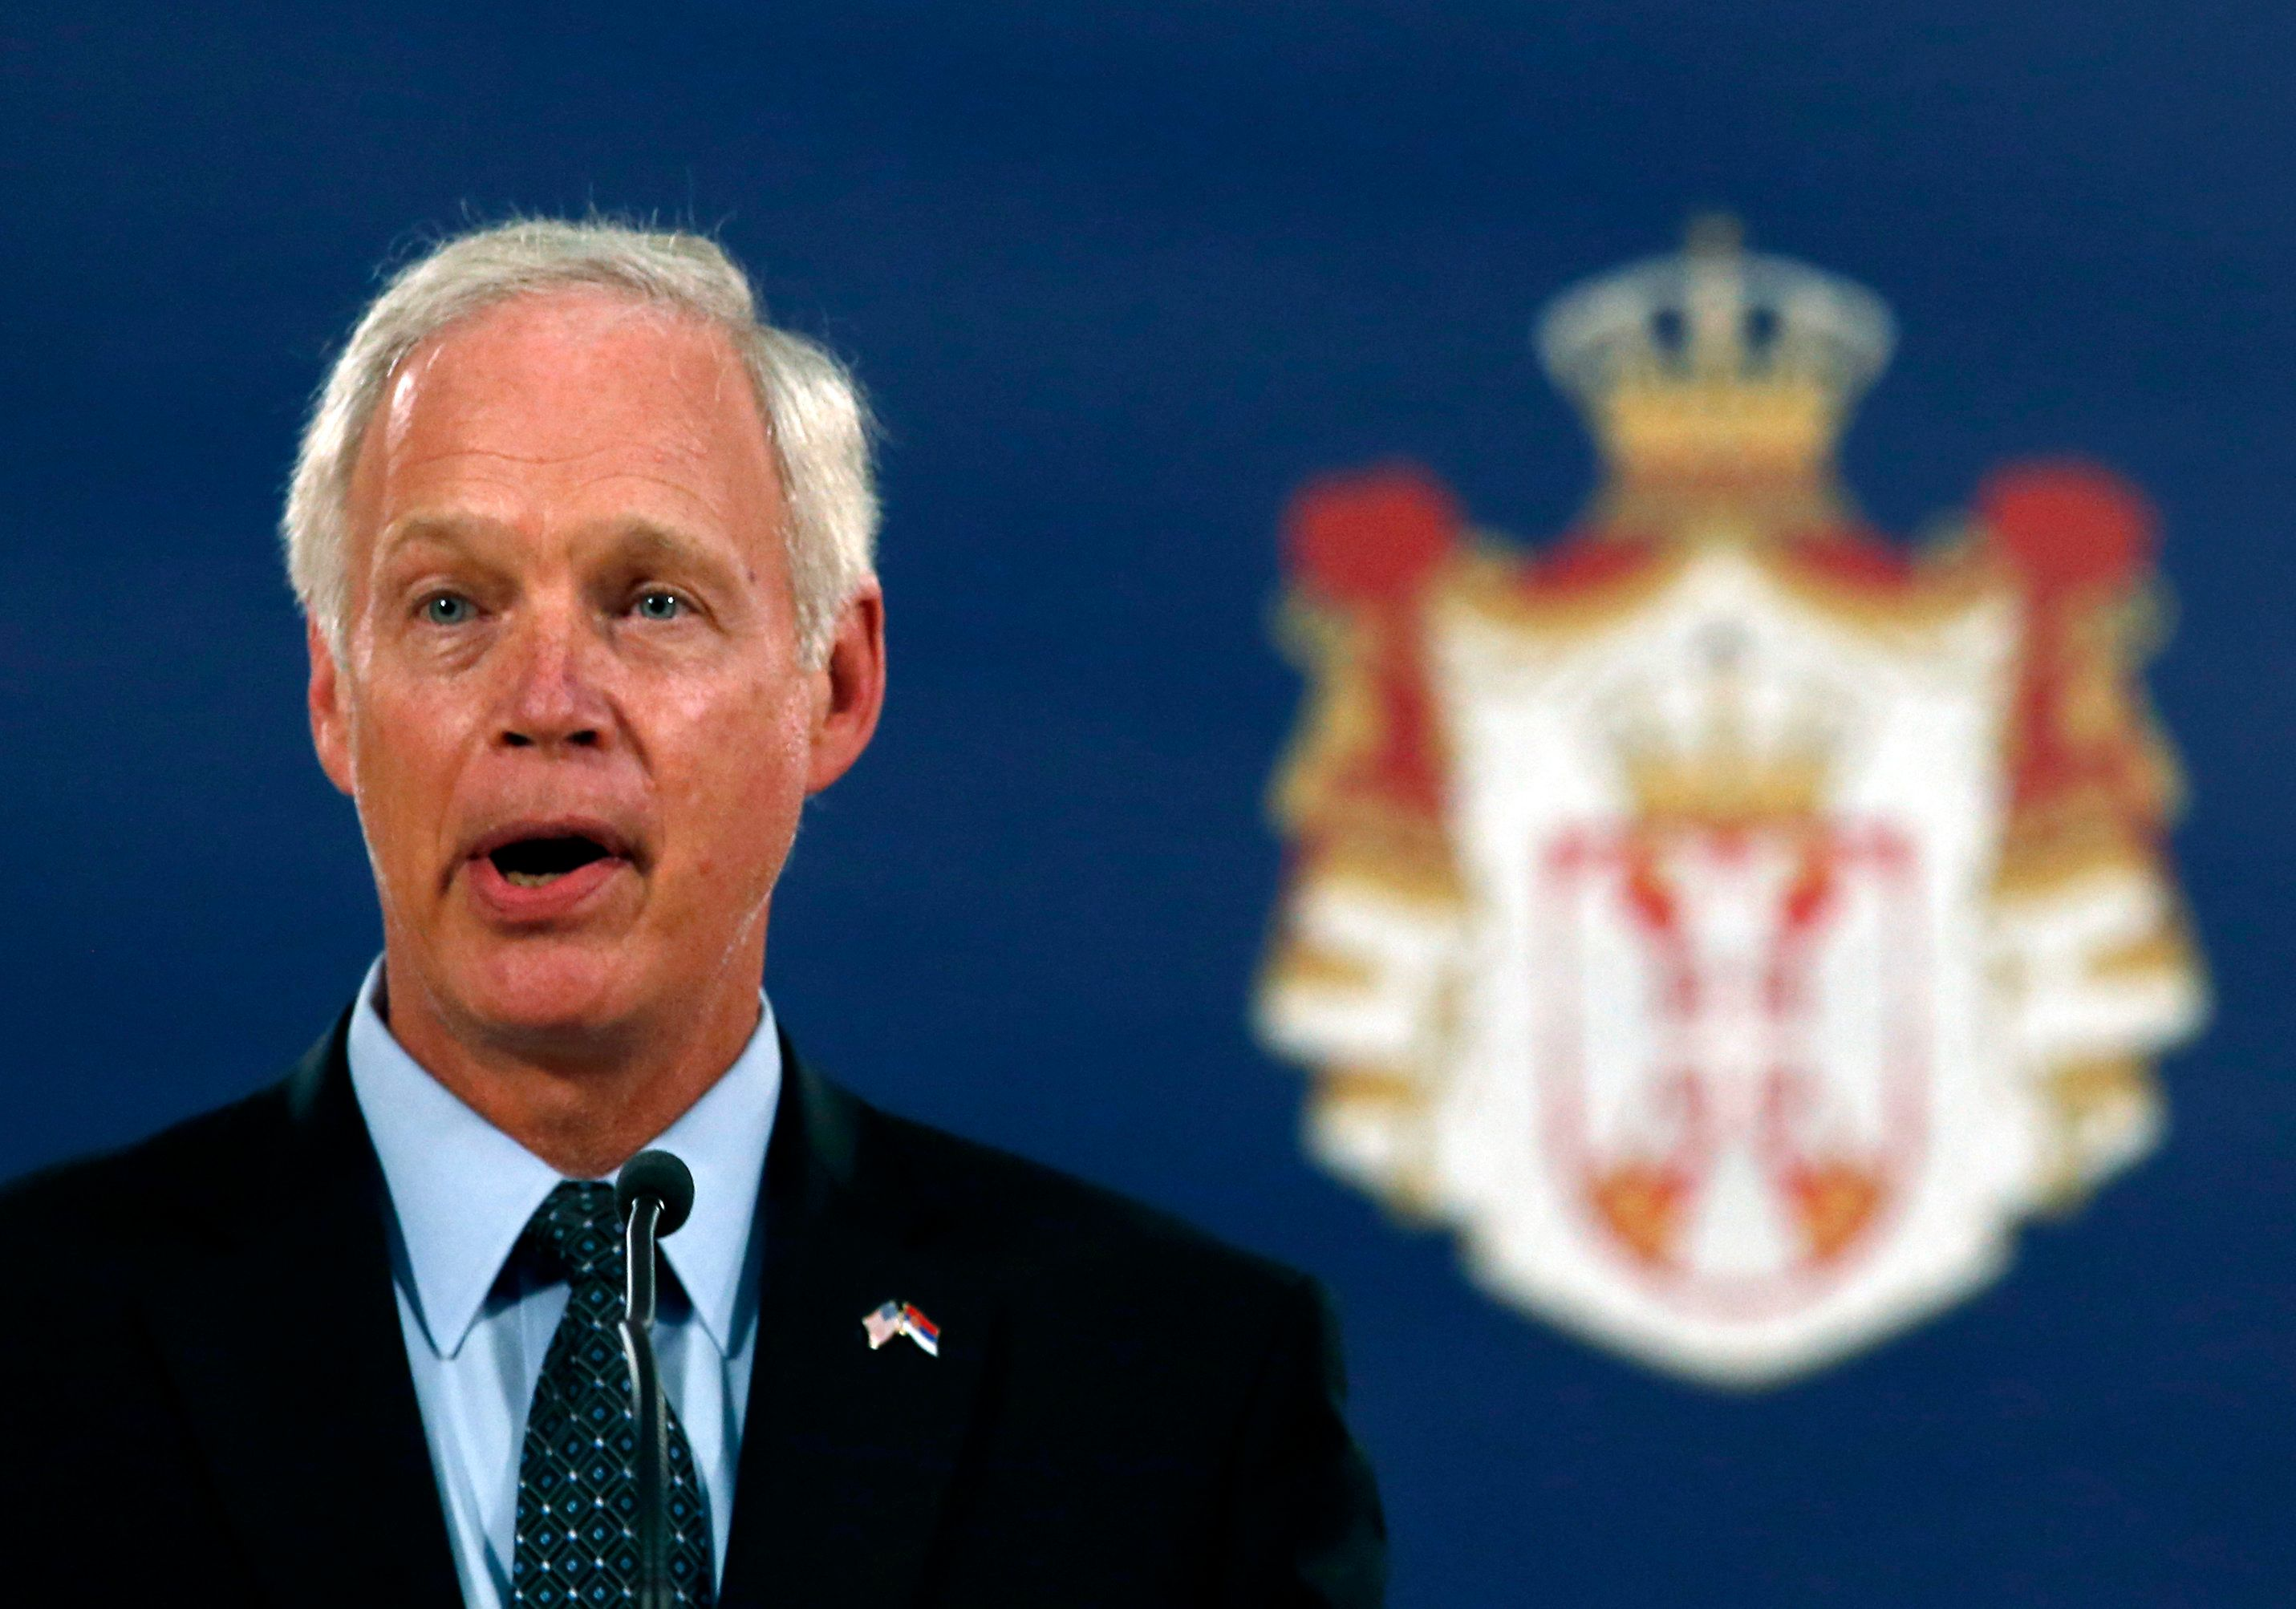 US Senator Ron Johnson speaks during press conference after talks with Serbia's President Aleksandar Vucic in Belgrade, Serbia, Monday, Sept. 10, 2018. Johnson is on a two day trip to meet with Serbian officials. (AP Photo/Darko Vojinovic)